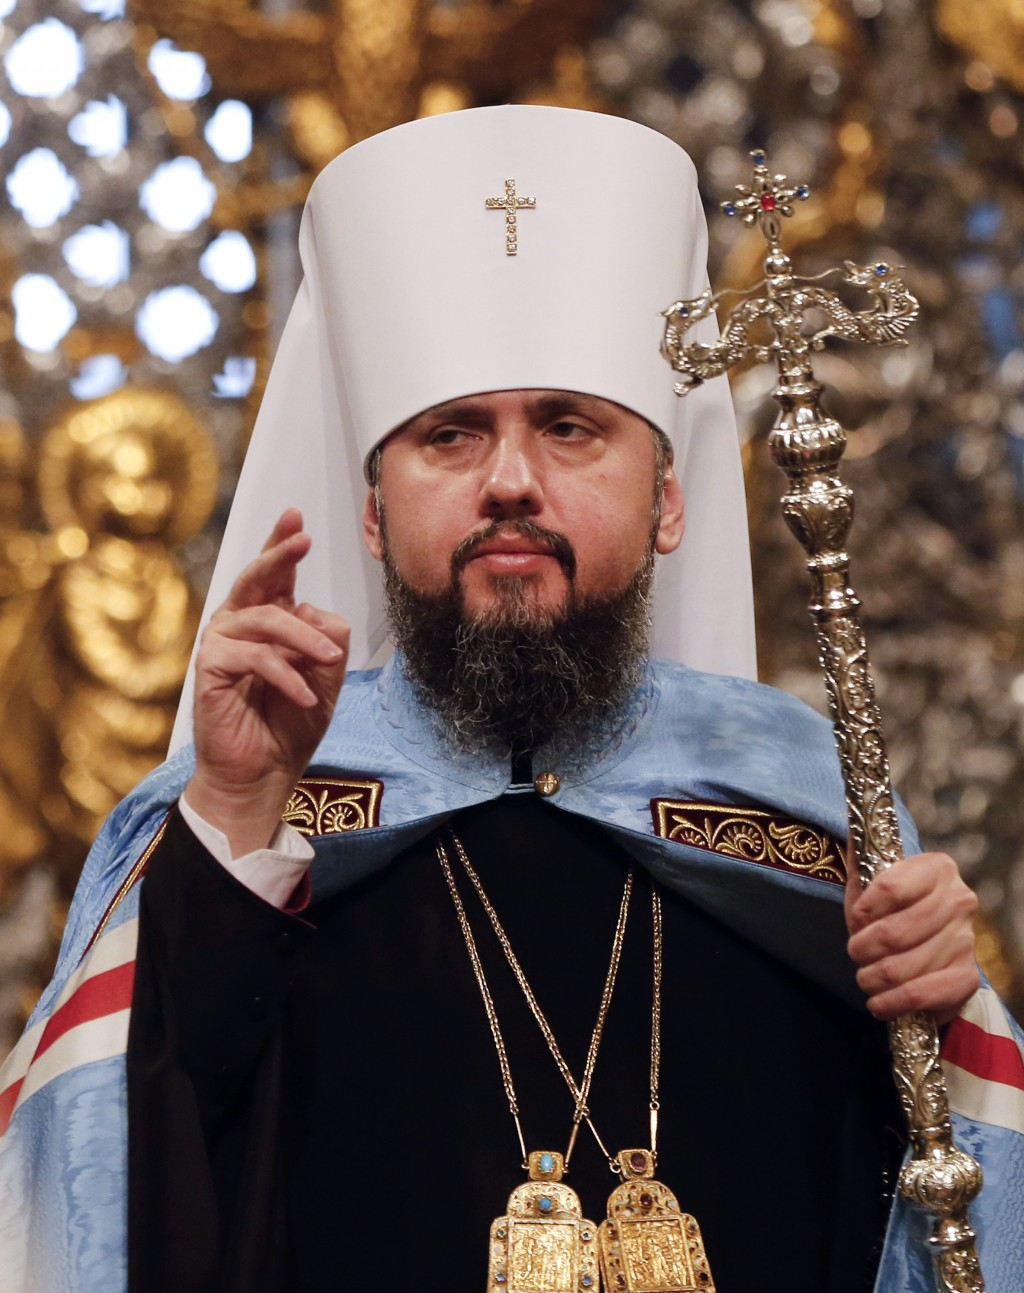 Metropolitan Epiphanius, the head of the independent Ukrainian Orthodox Church, leads the Christmas service in the St. Sophia Cathedral in Kiev, Ukrai